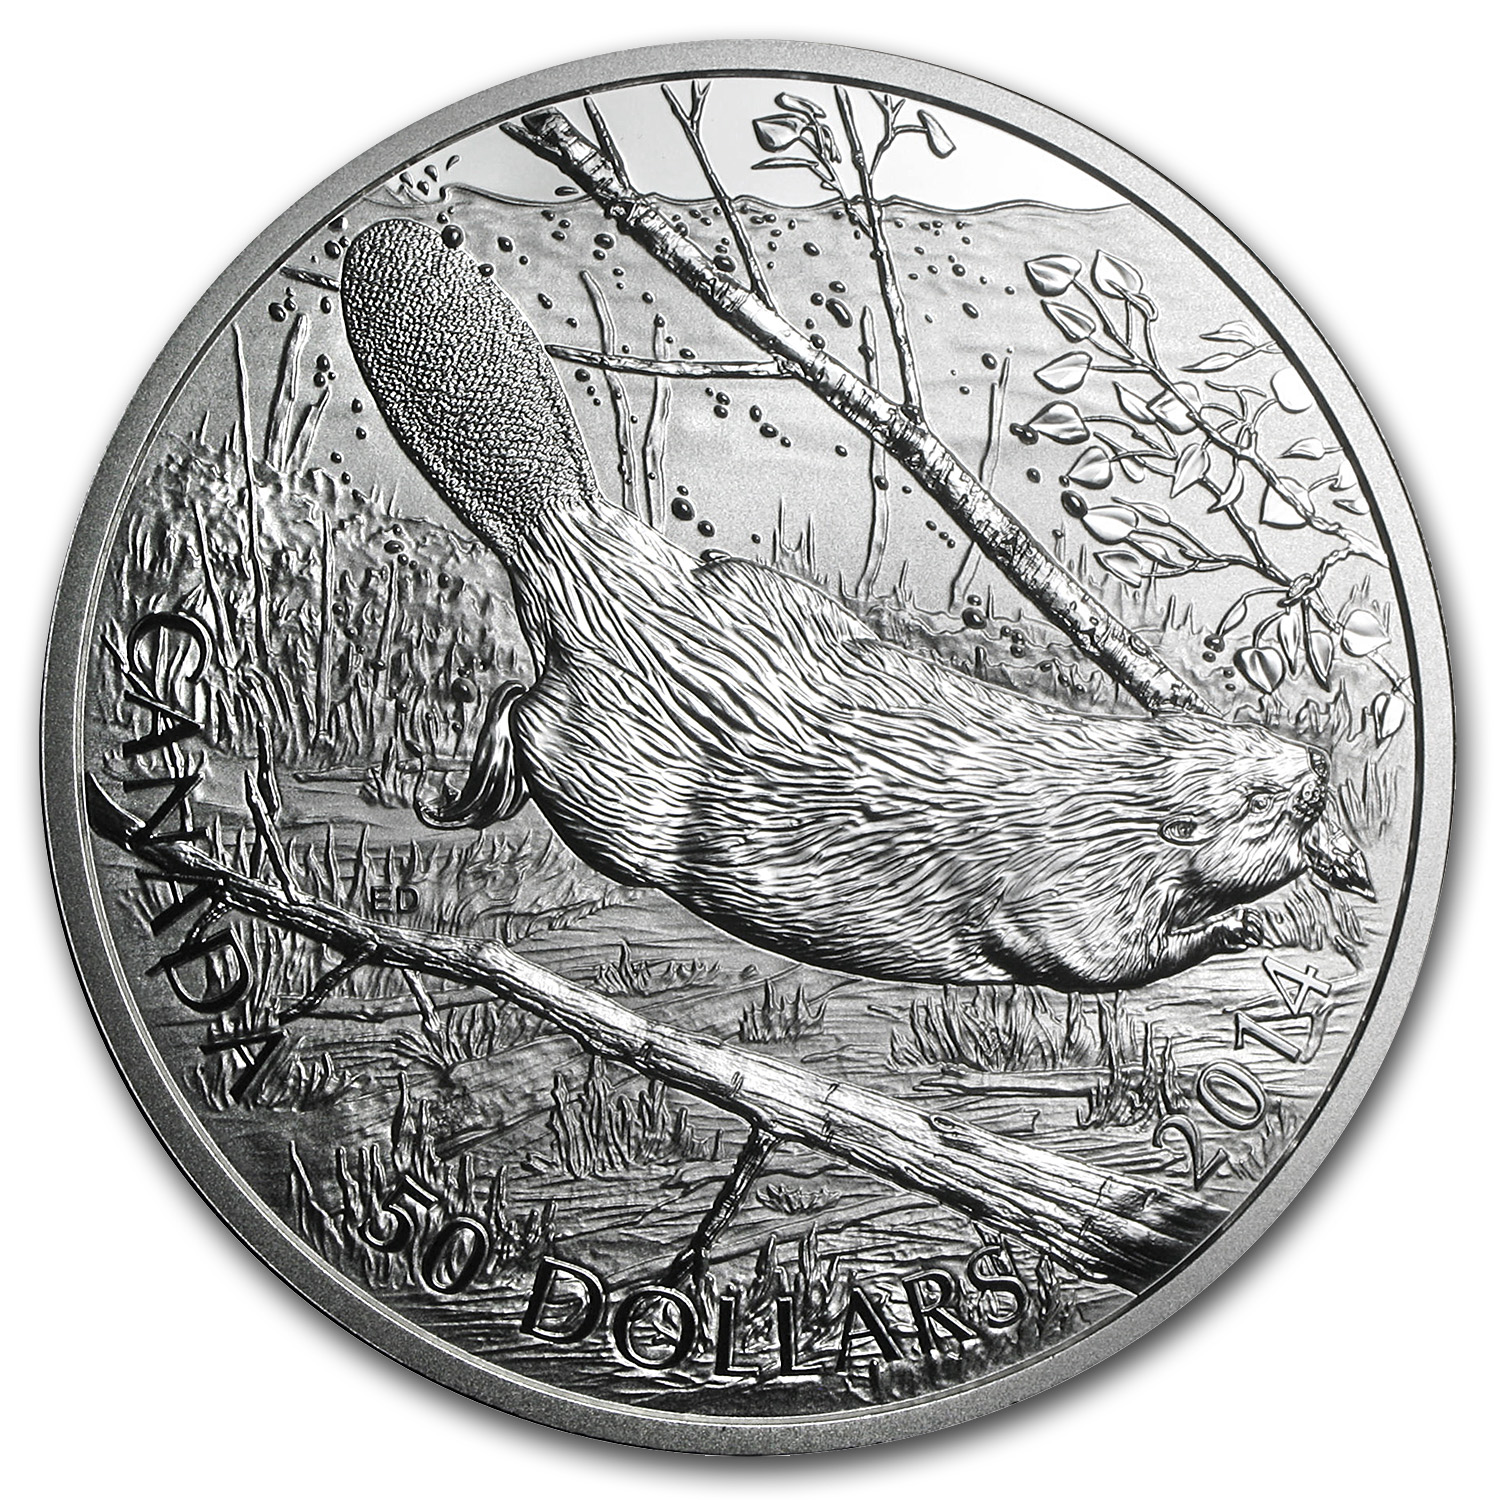 2014 5 oz Silver Canadian $50 Coin - Swimming Beaver